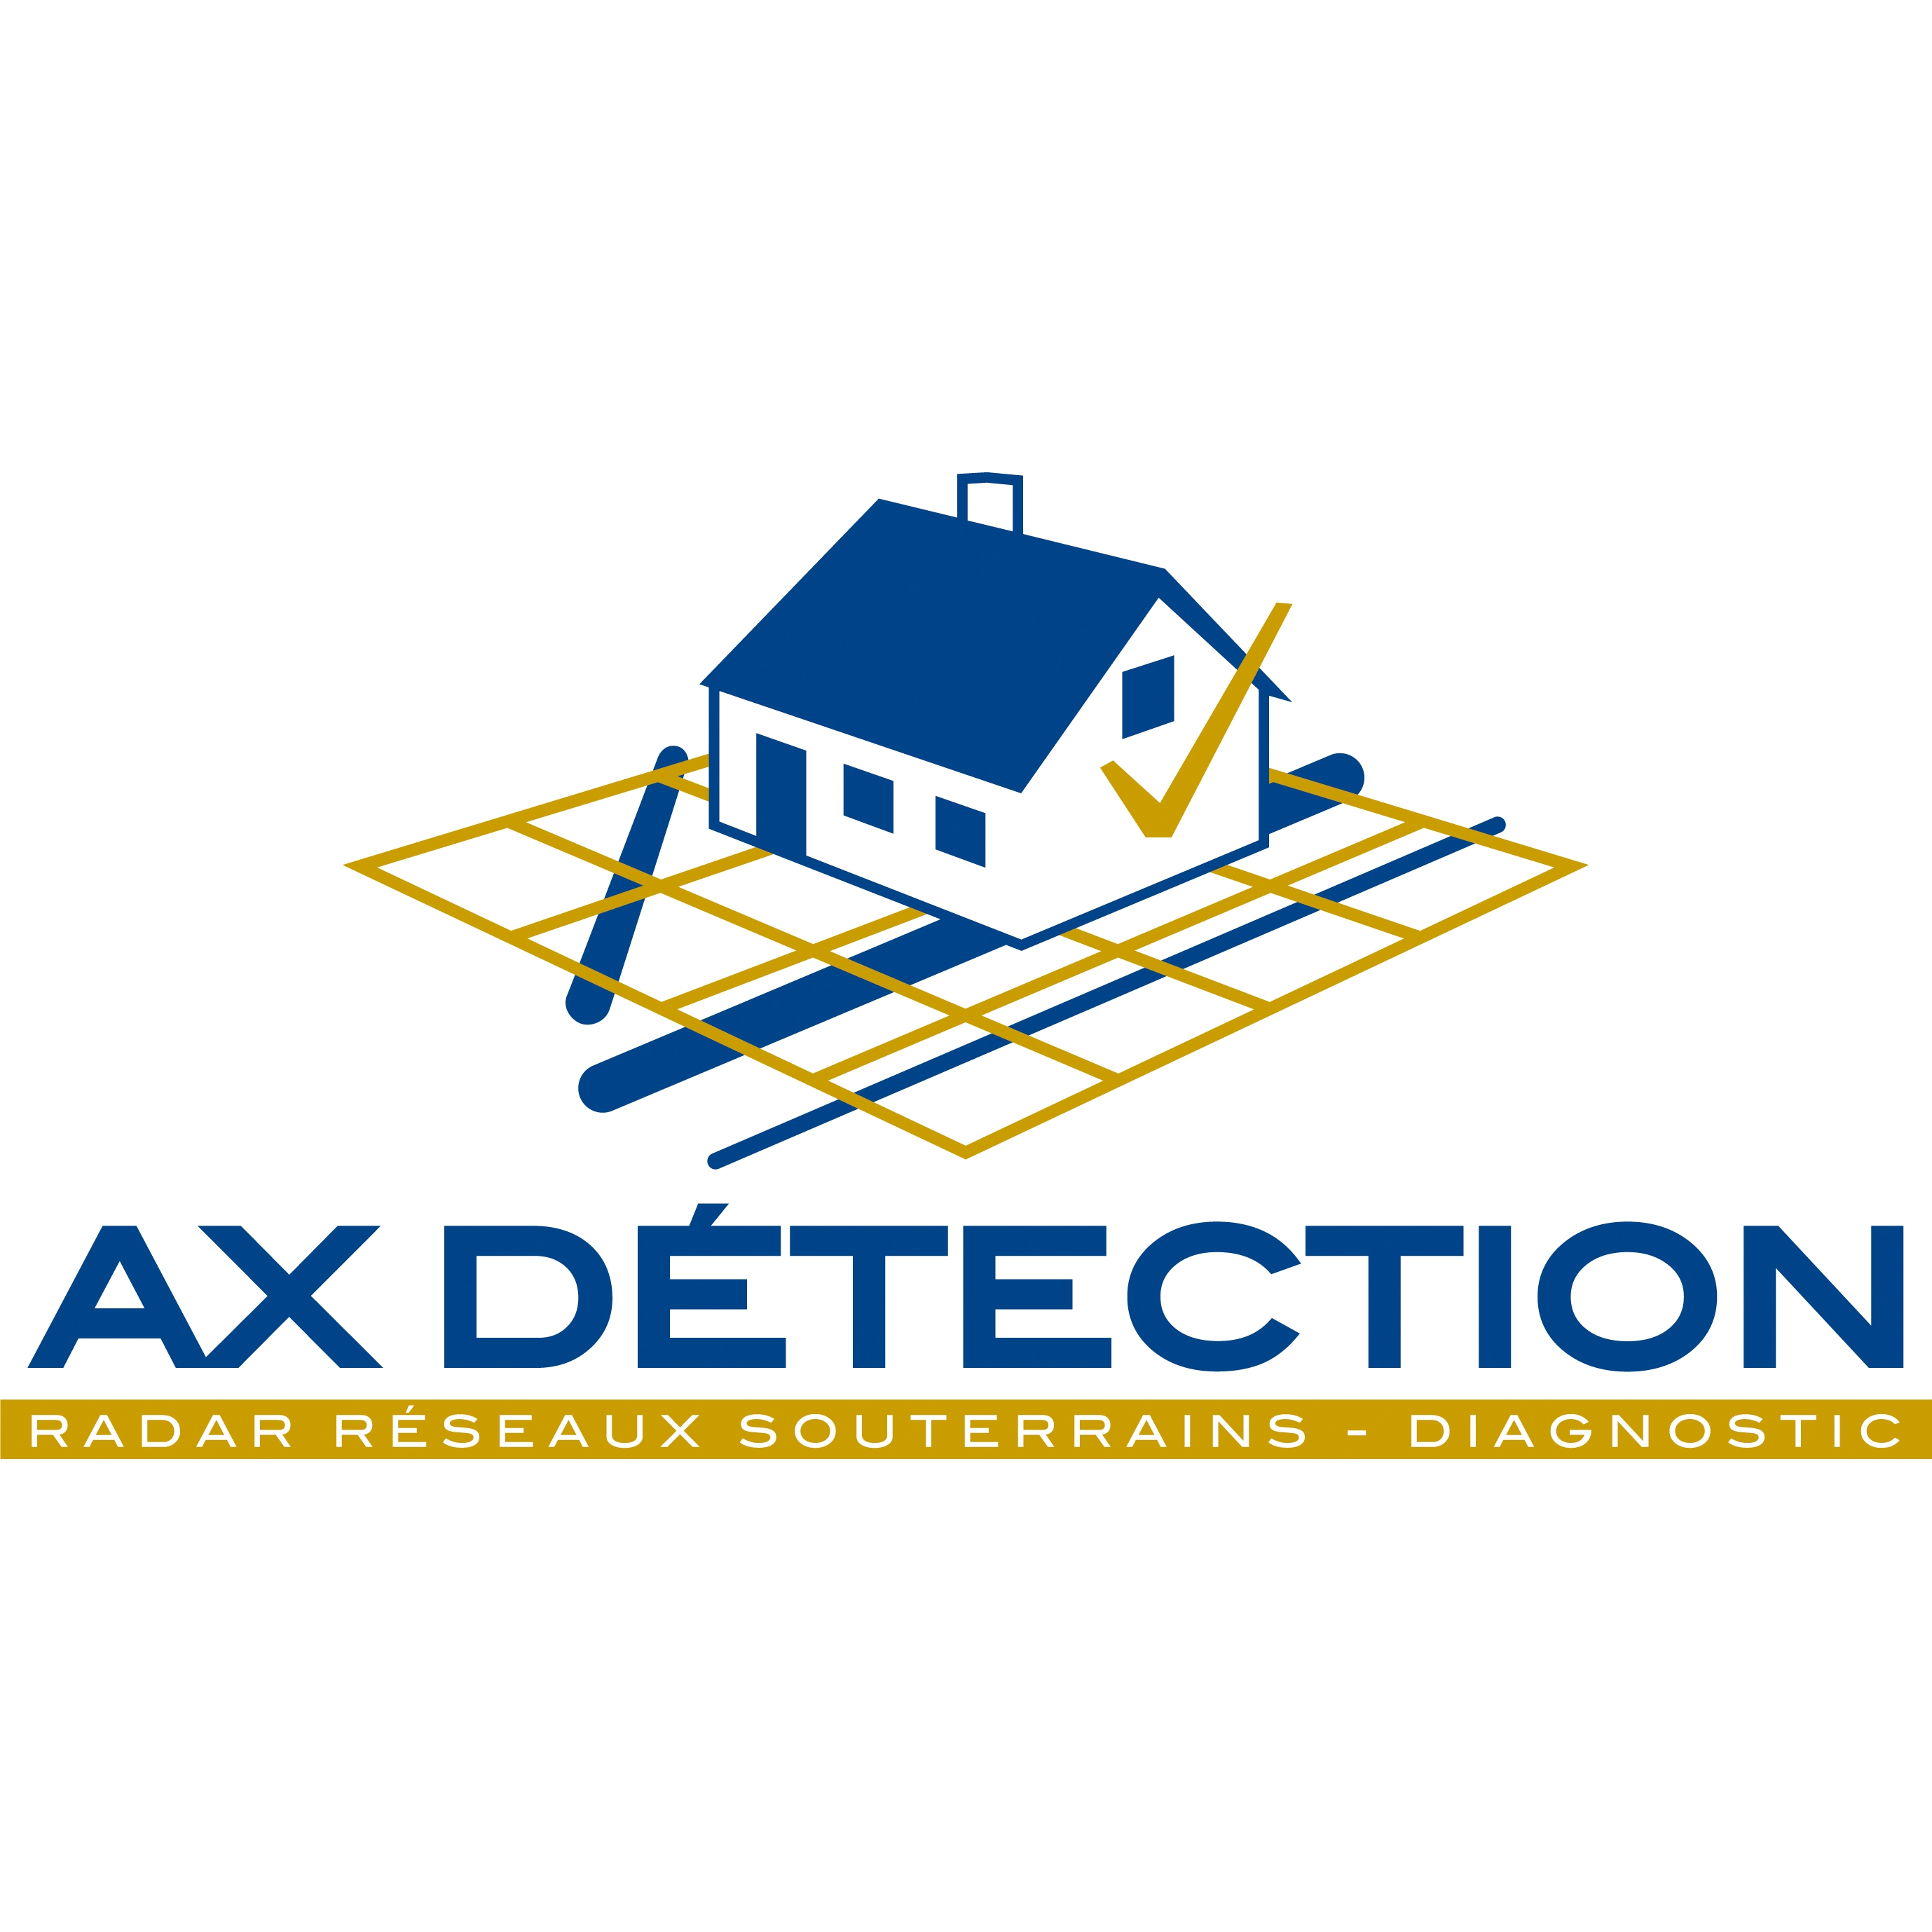 AX Detection